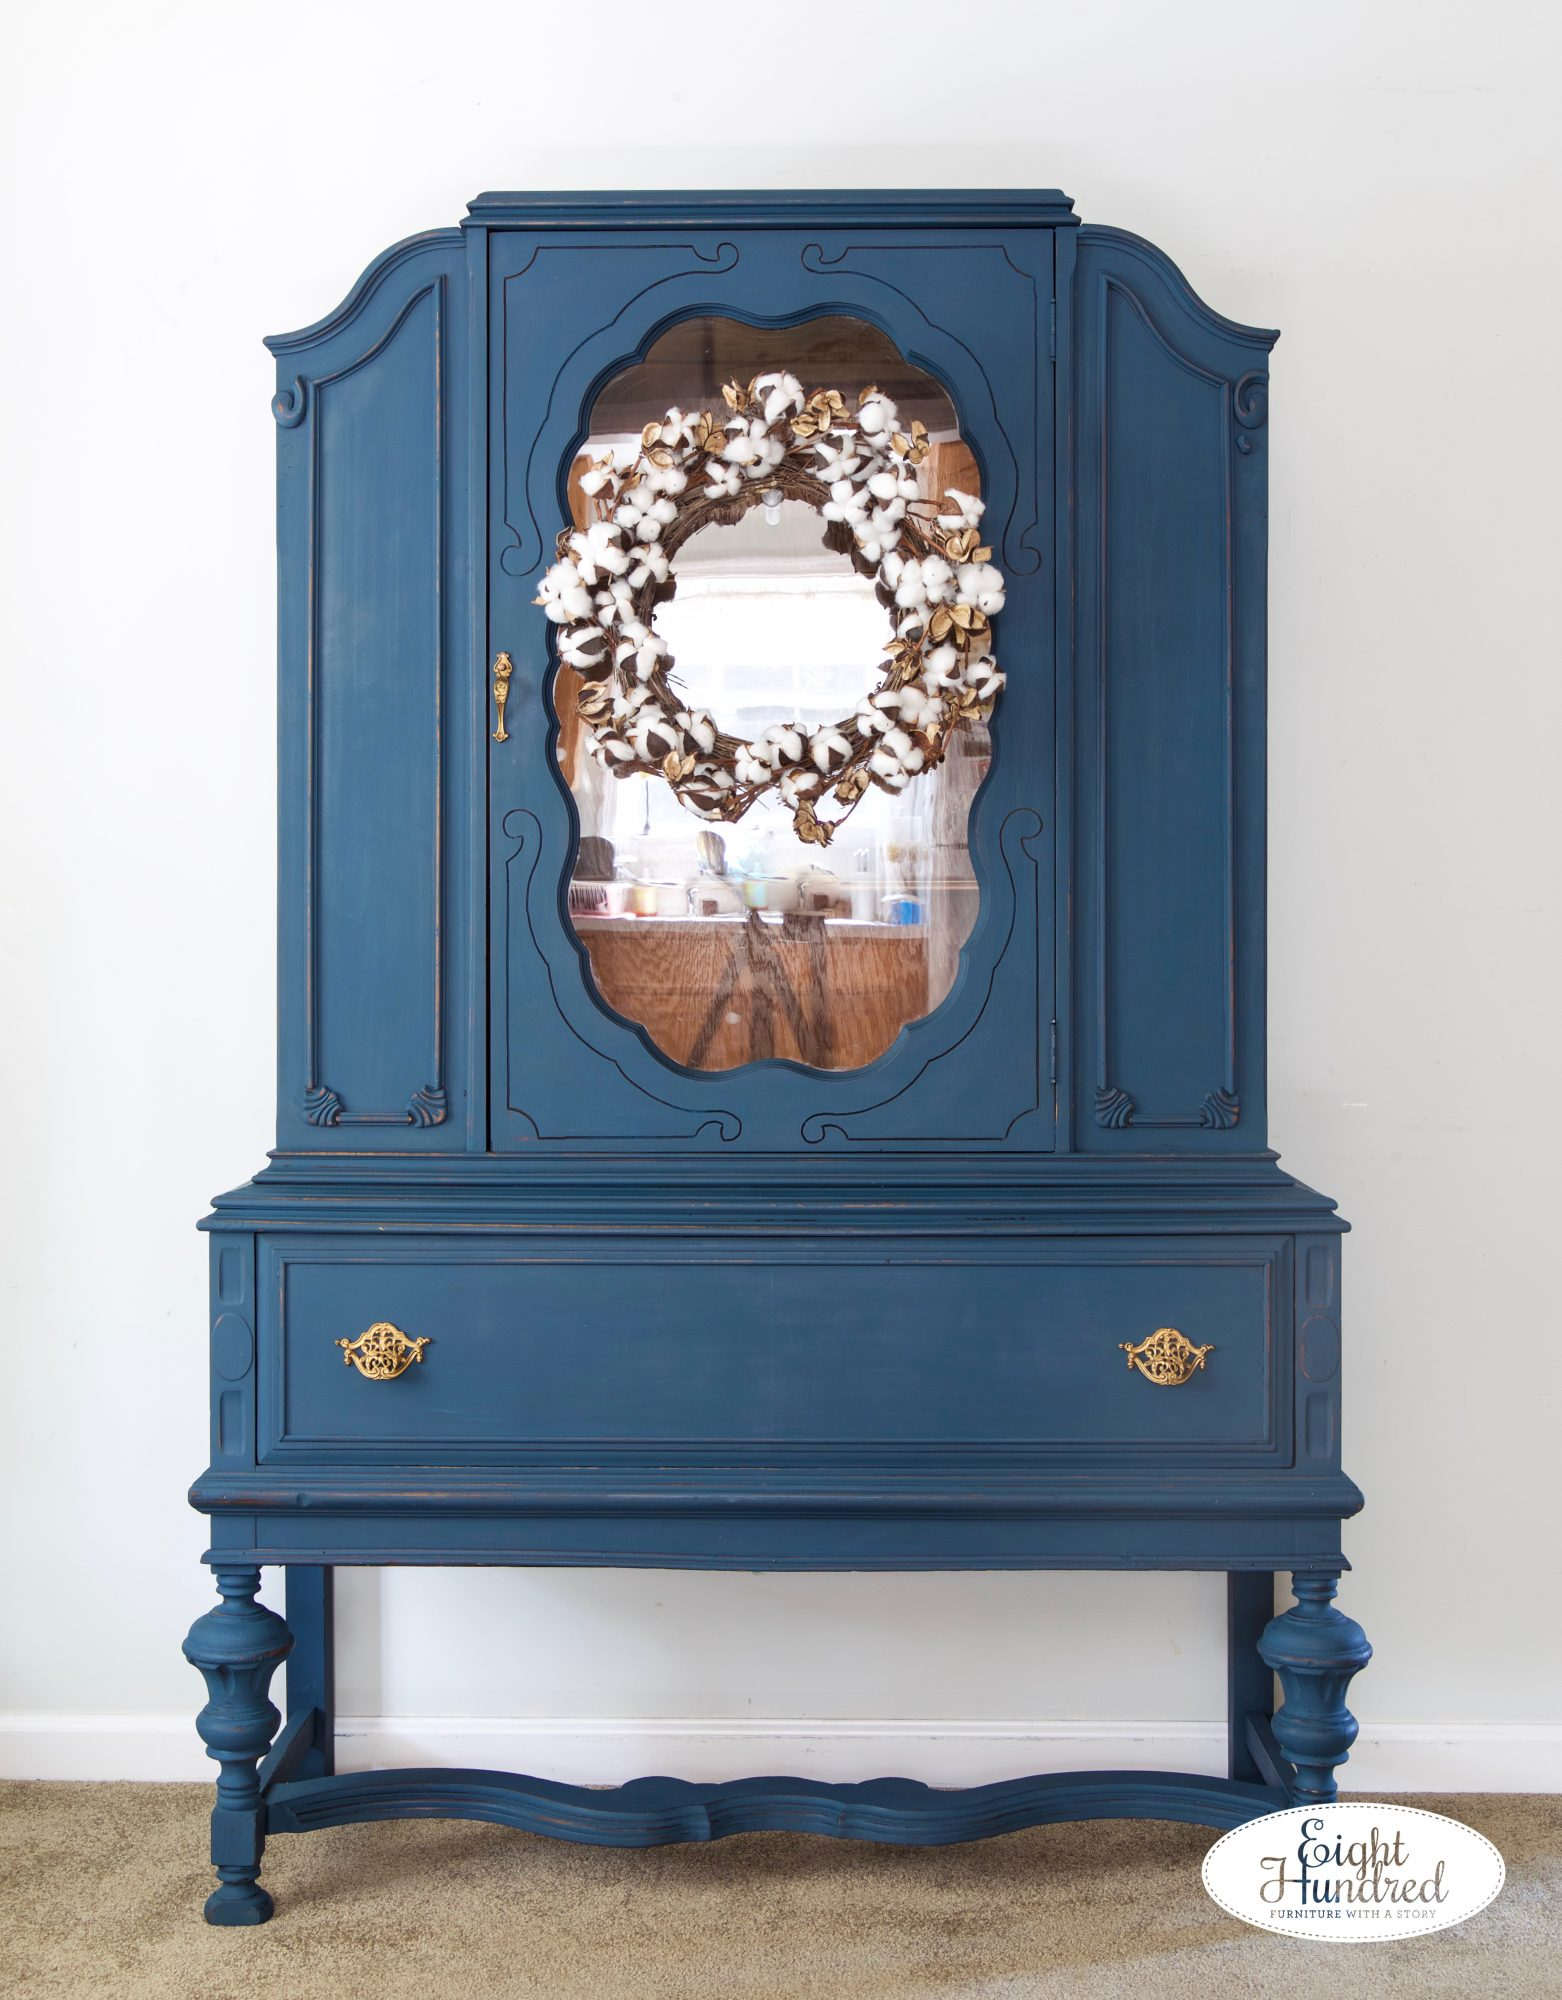 Front view of china cabinet painted in mix of Flow Blue and Artissimo MMS Milk Paint by Jenn Baker of Eight Hundred Furniture